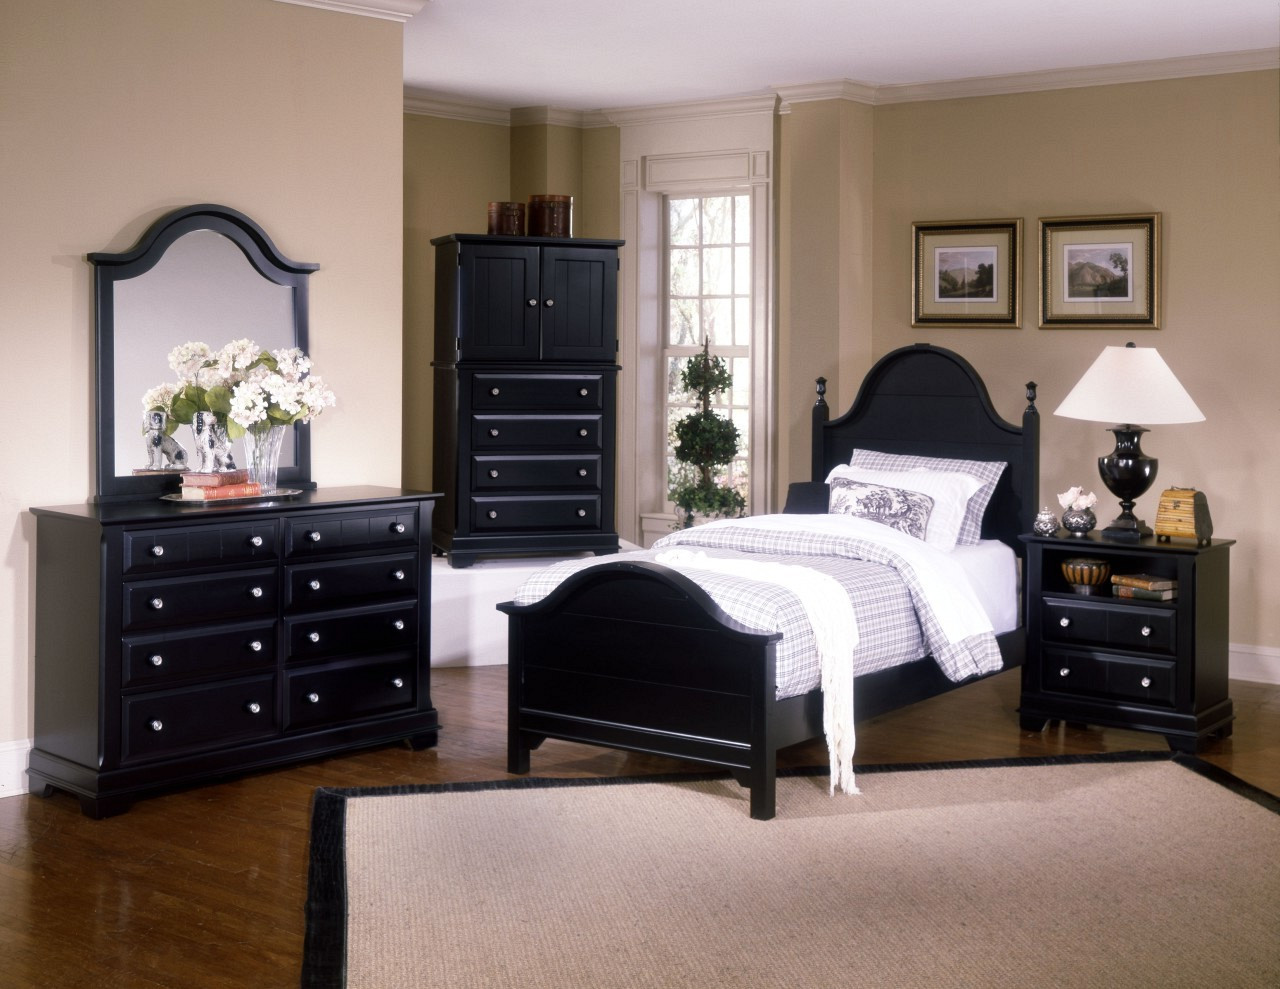 Best ideas about Discount Bedroom Furniture . Save or Pin Bargain bedroom furniture discount furniture bed Now.